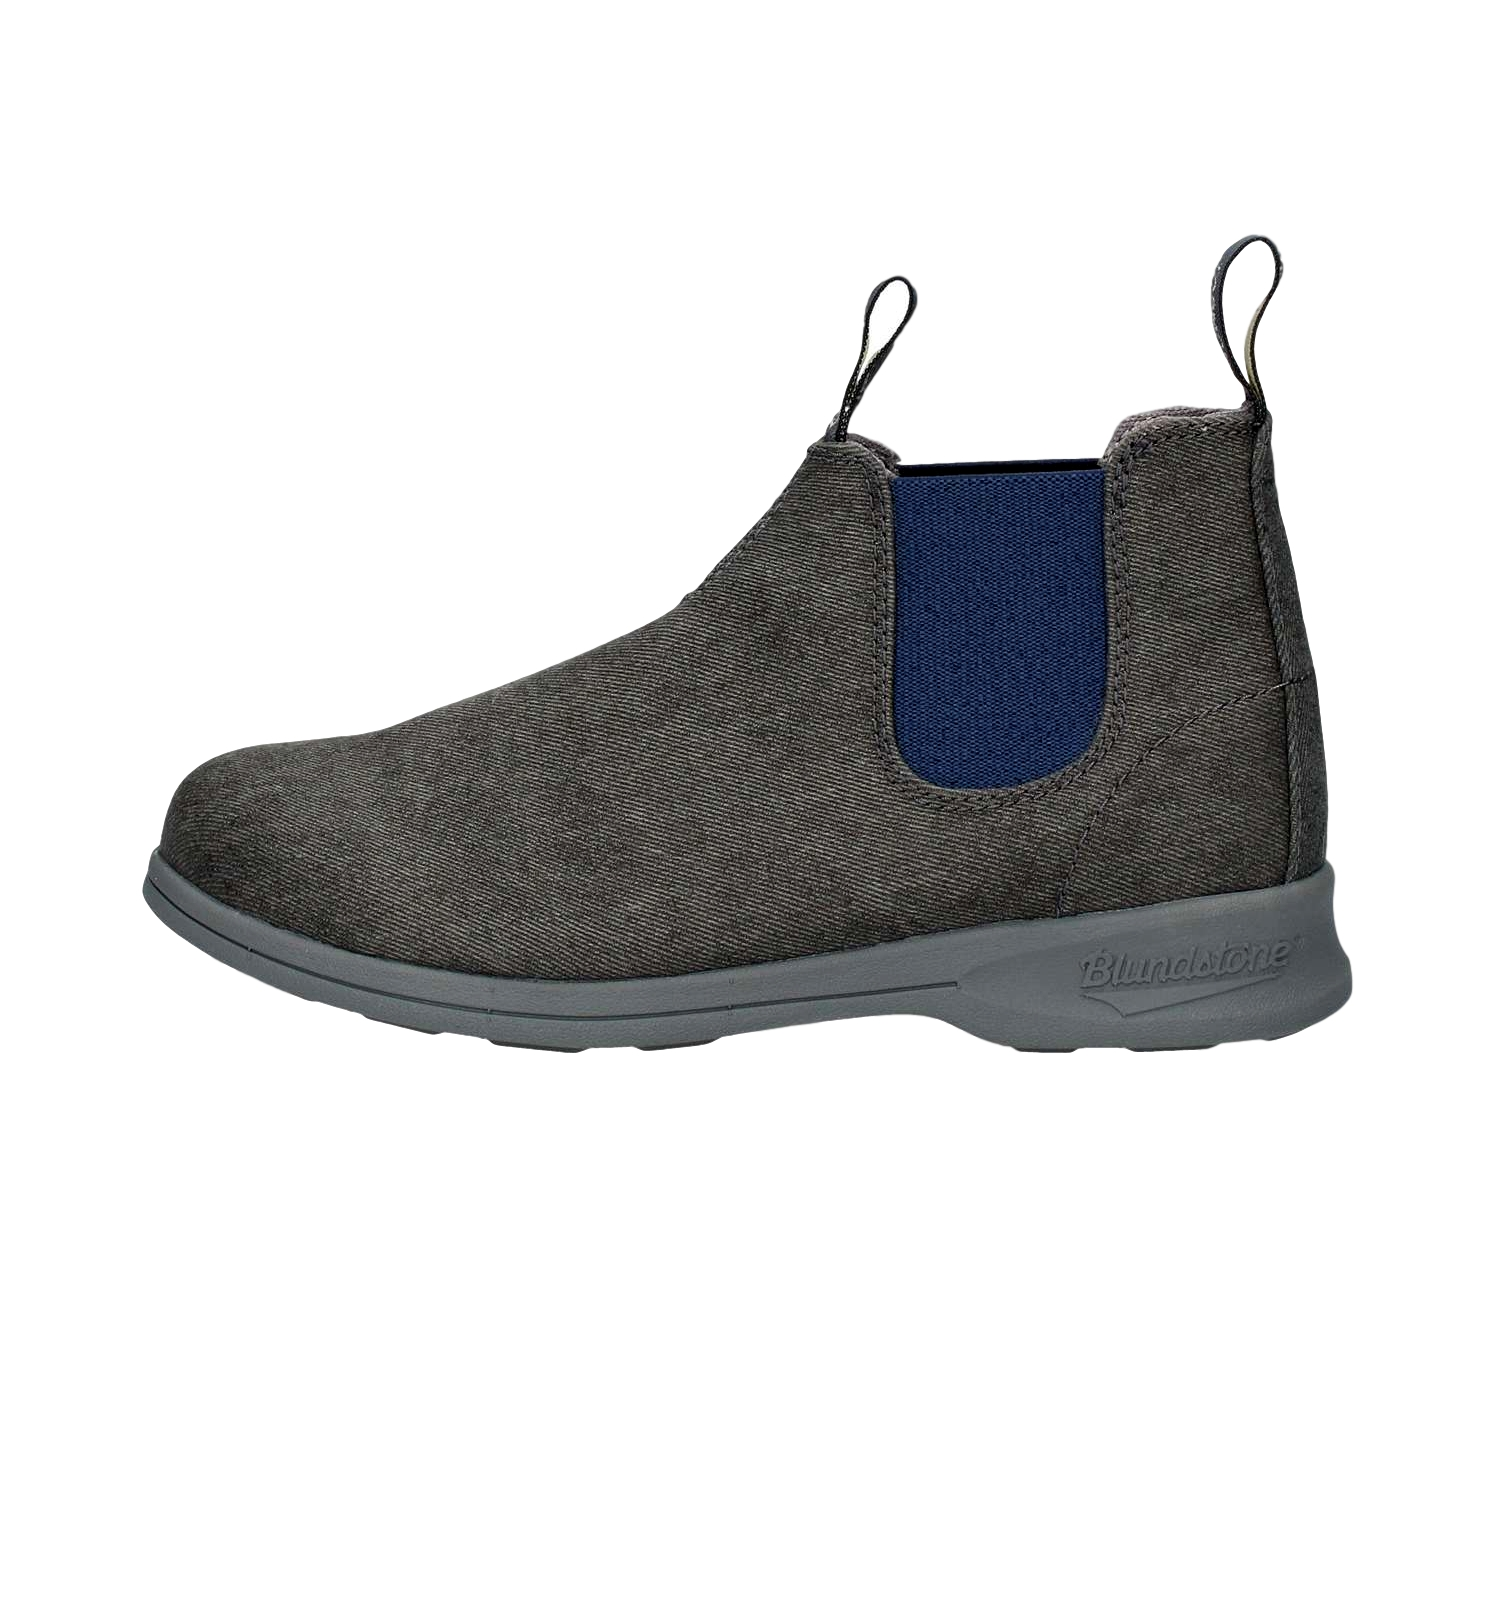 BLUNDSTONE 1369 STIVALETTI AUSTRALIANI CANVAS ELASTIC SIDE CHARCOAL PALE BLUE